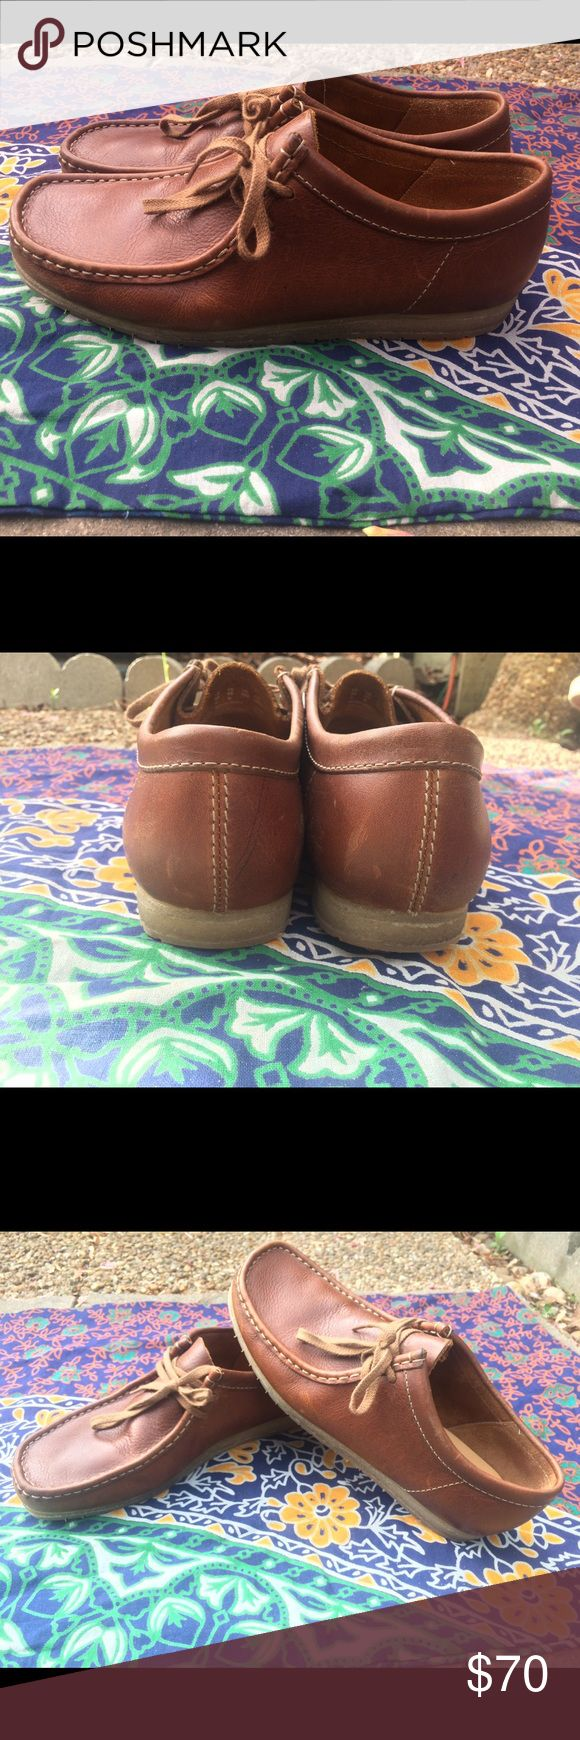 Men's Clarks Wallabee Step Brand new! Never worn! Clarks tan leather Wallabees Step in a size 9 1/2. Clarks Shoes Chukka Boots